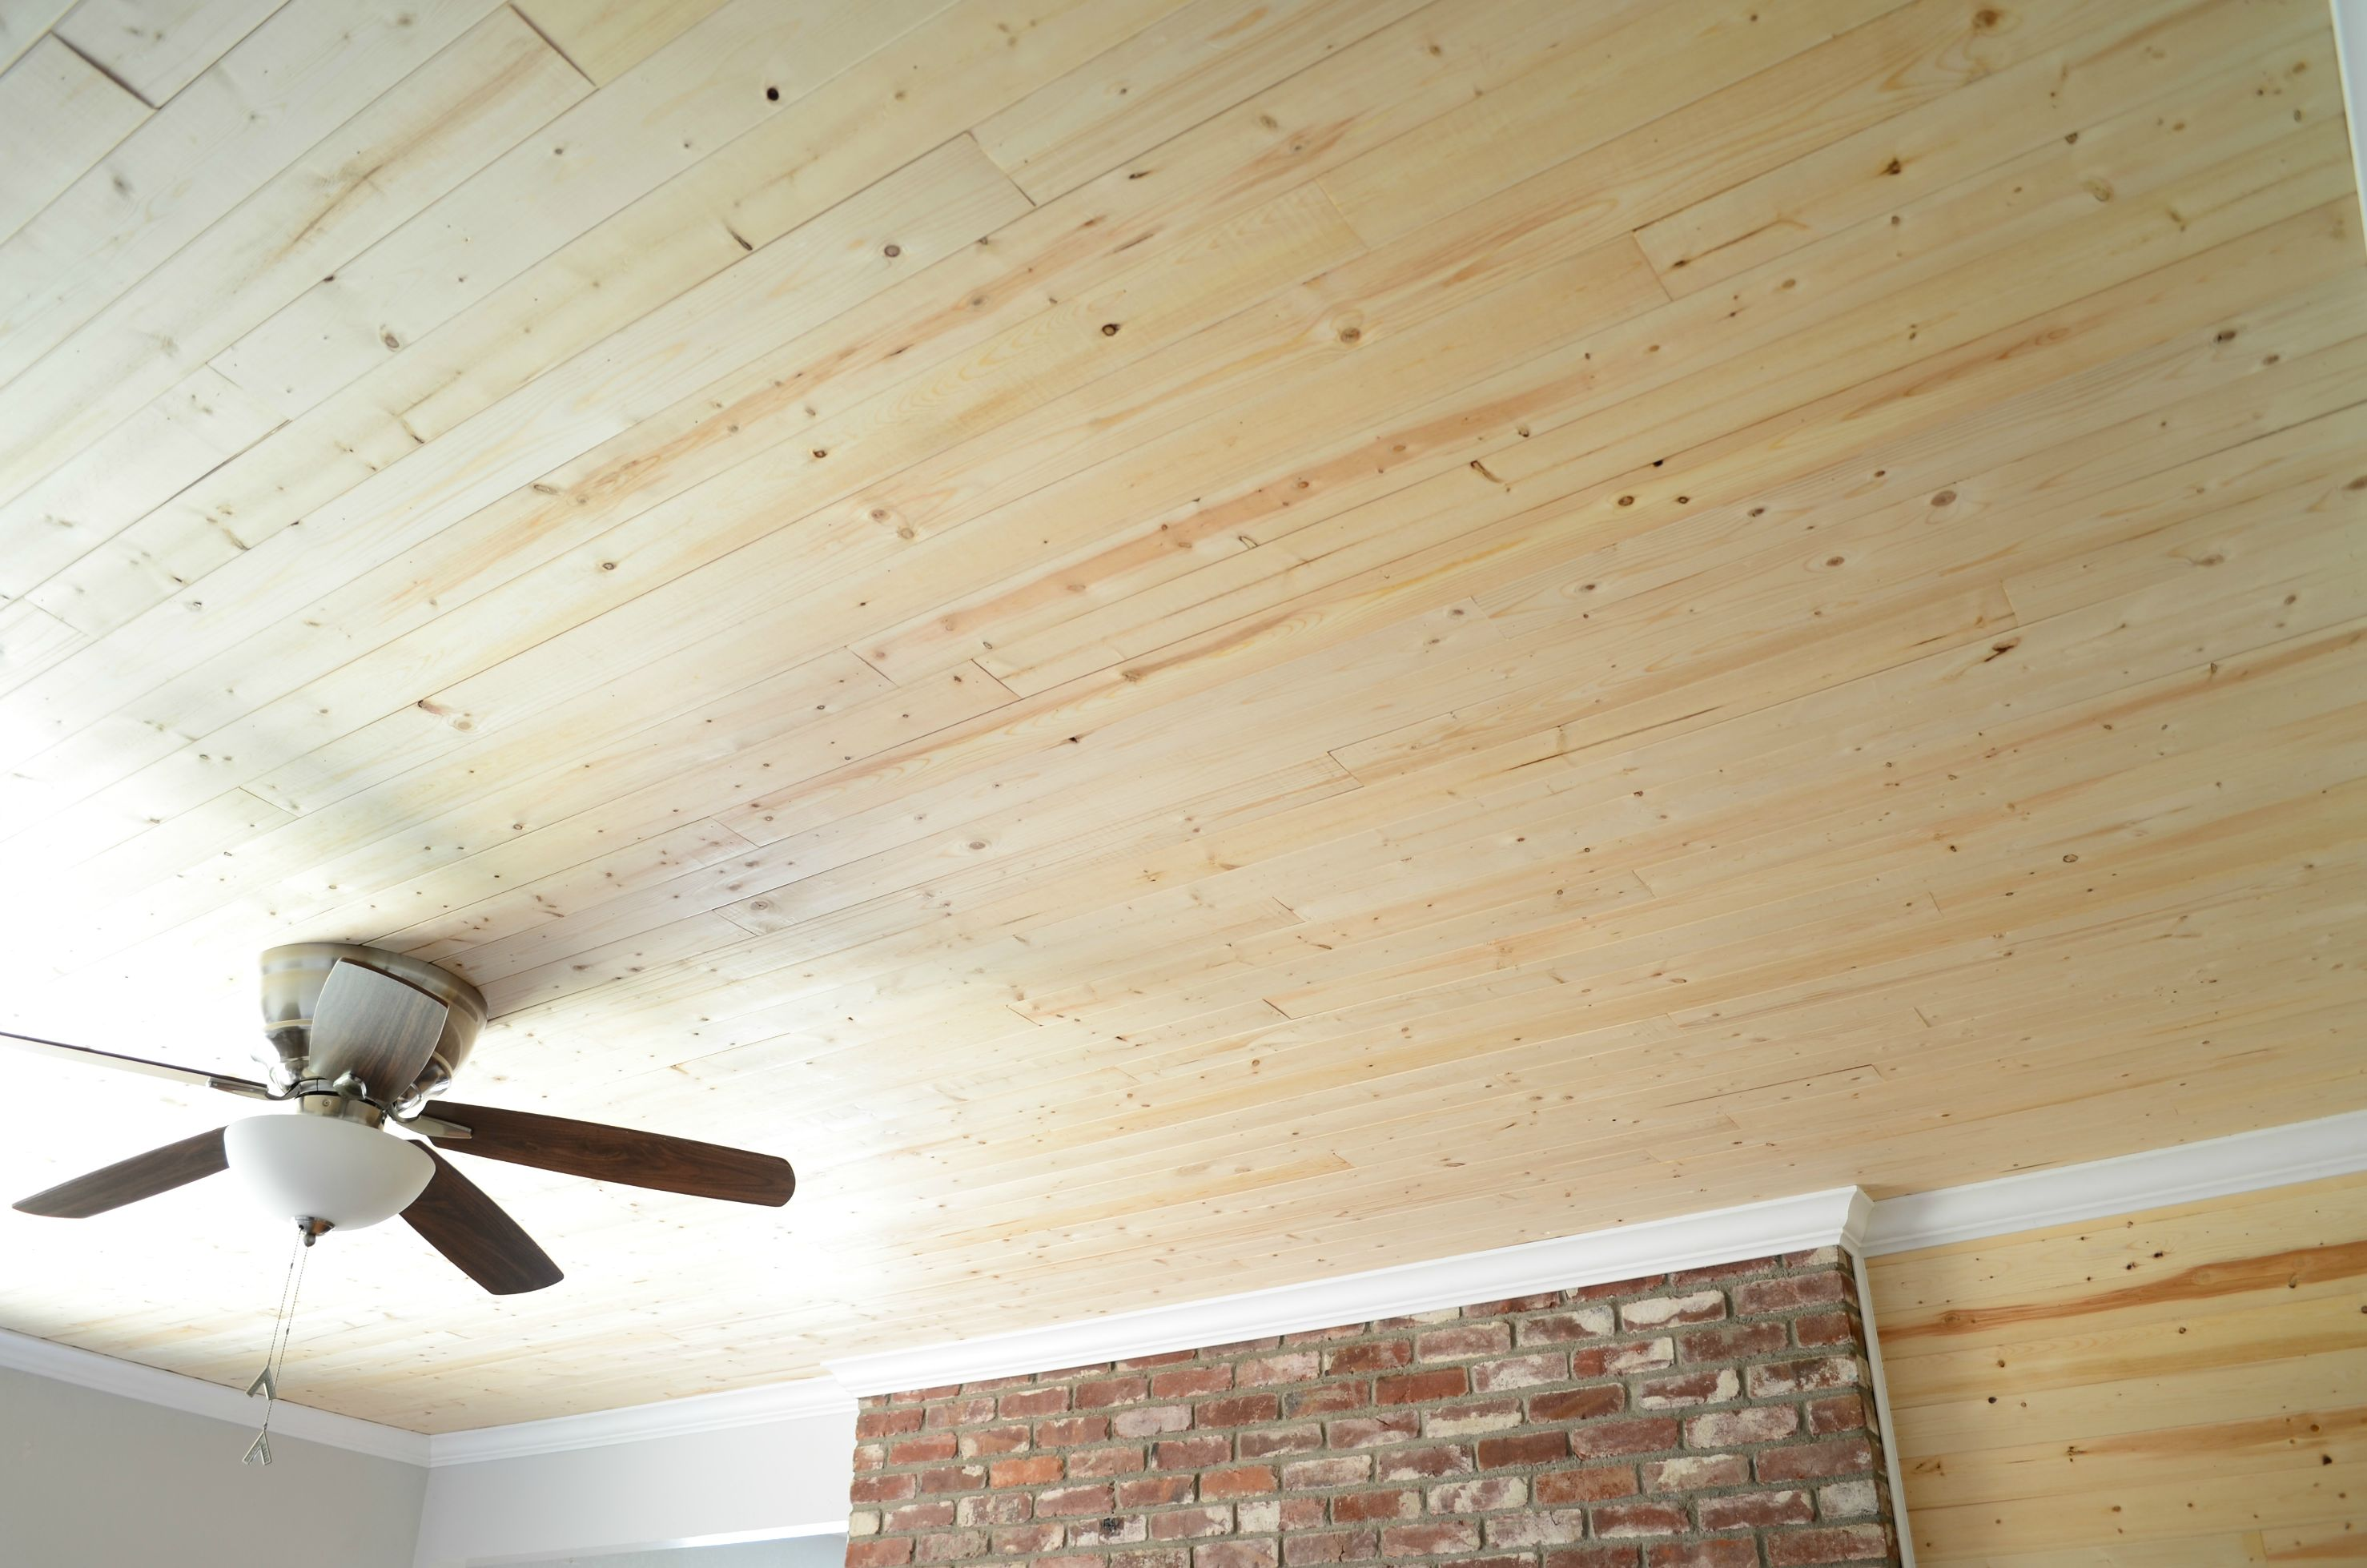 Soft Color For Wood Ceiling Planks With Fan